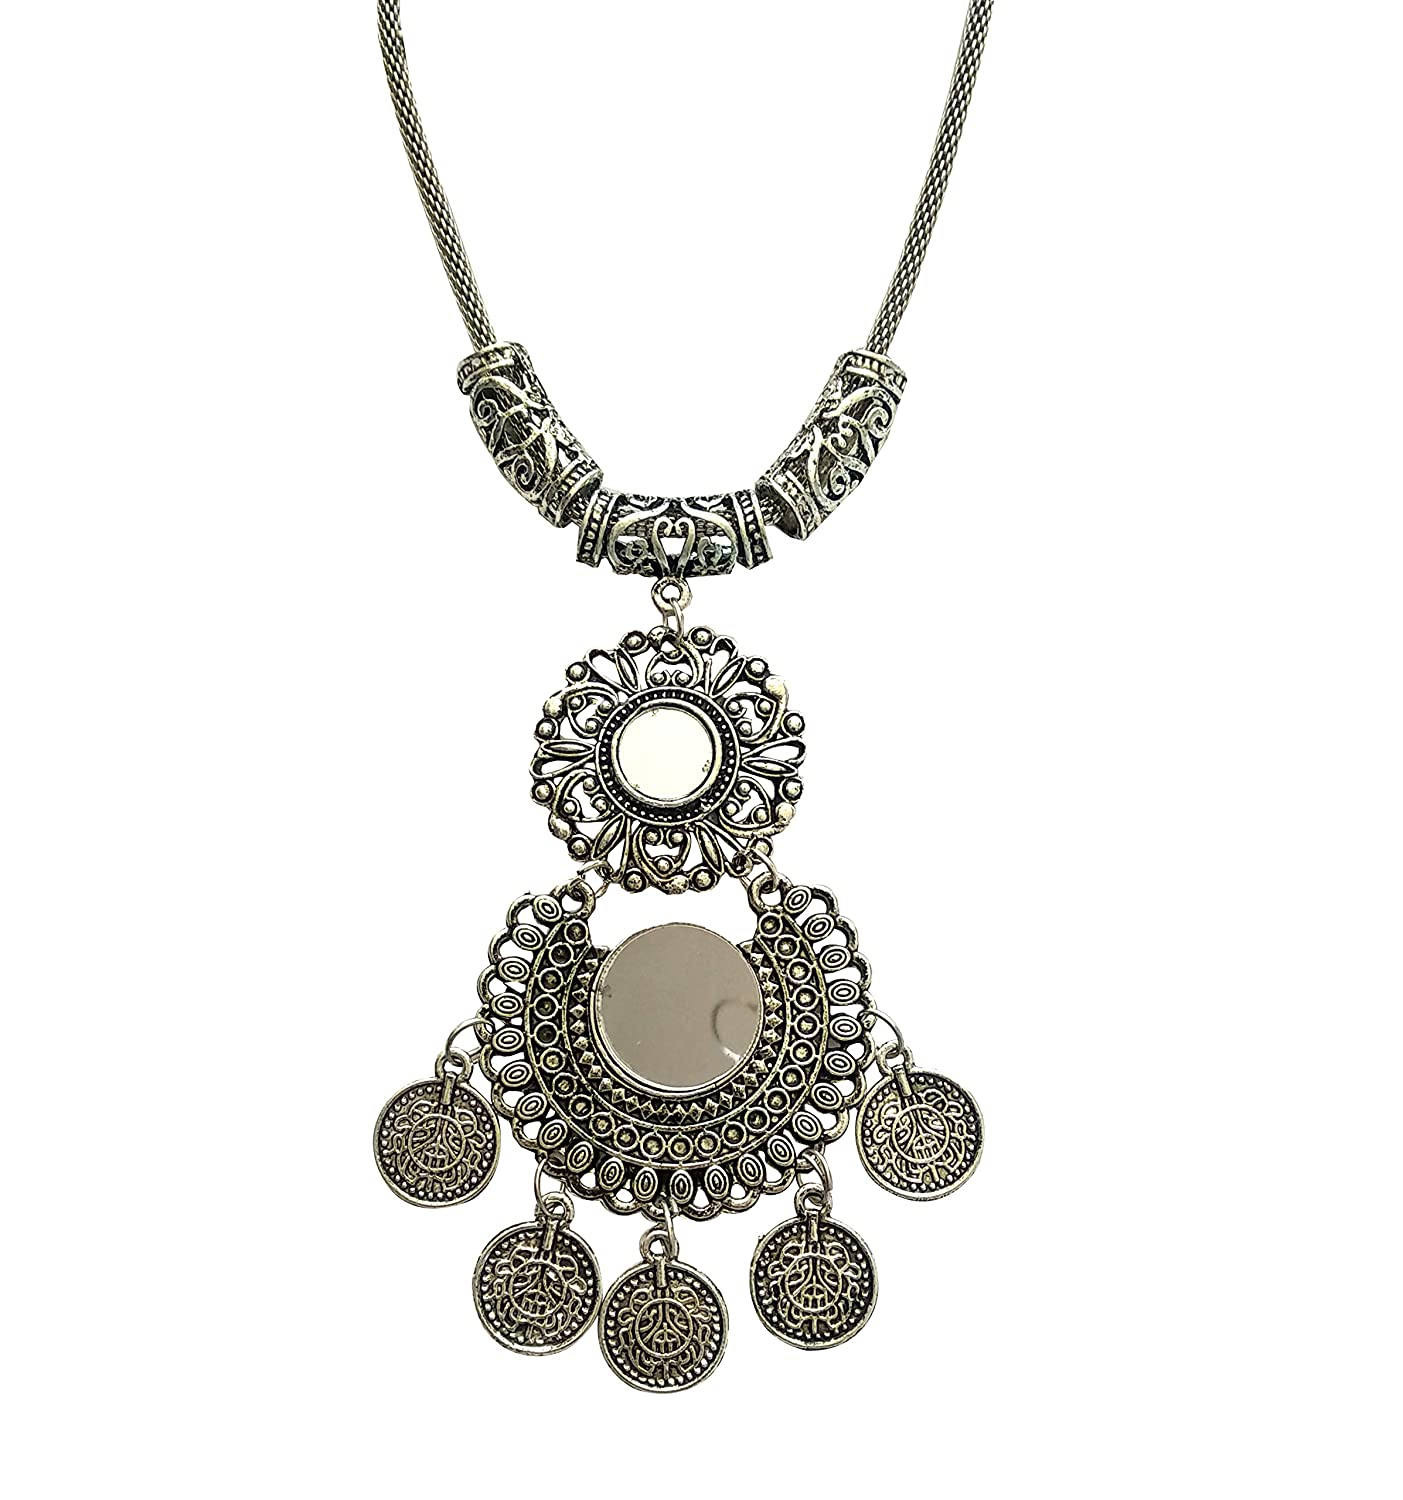 The Trendy Trendz India Bollywood Oxidized Silver Gypsy Style Mirror Pendant Long Chian Navratri Jewelry Set for Women and Girls